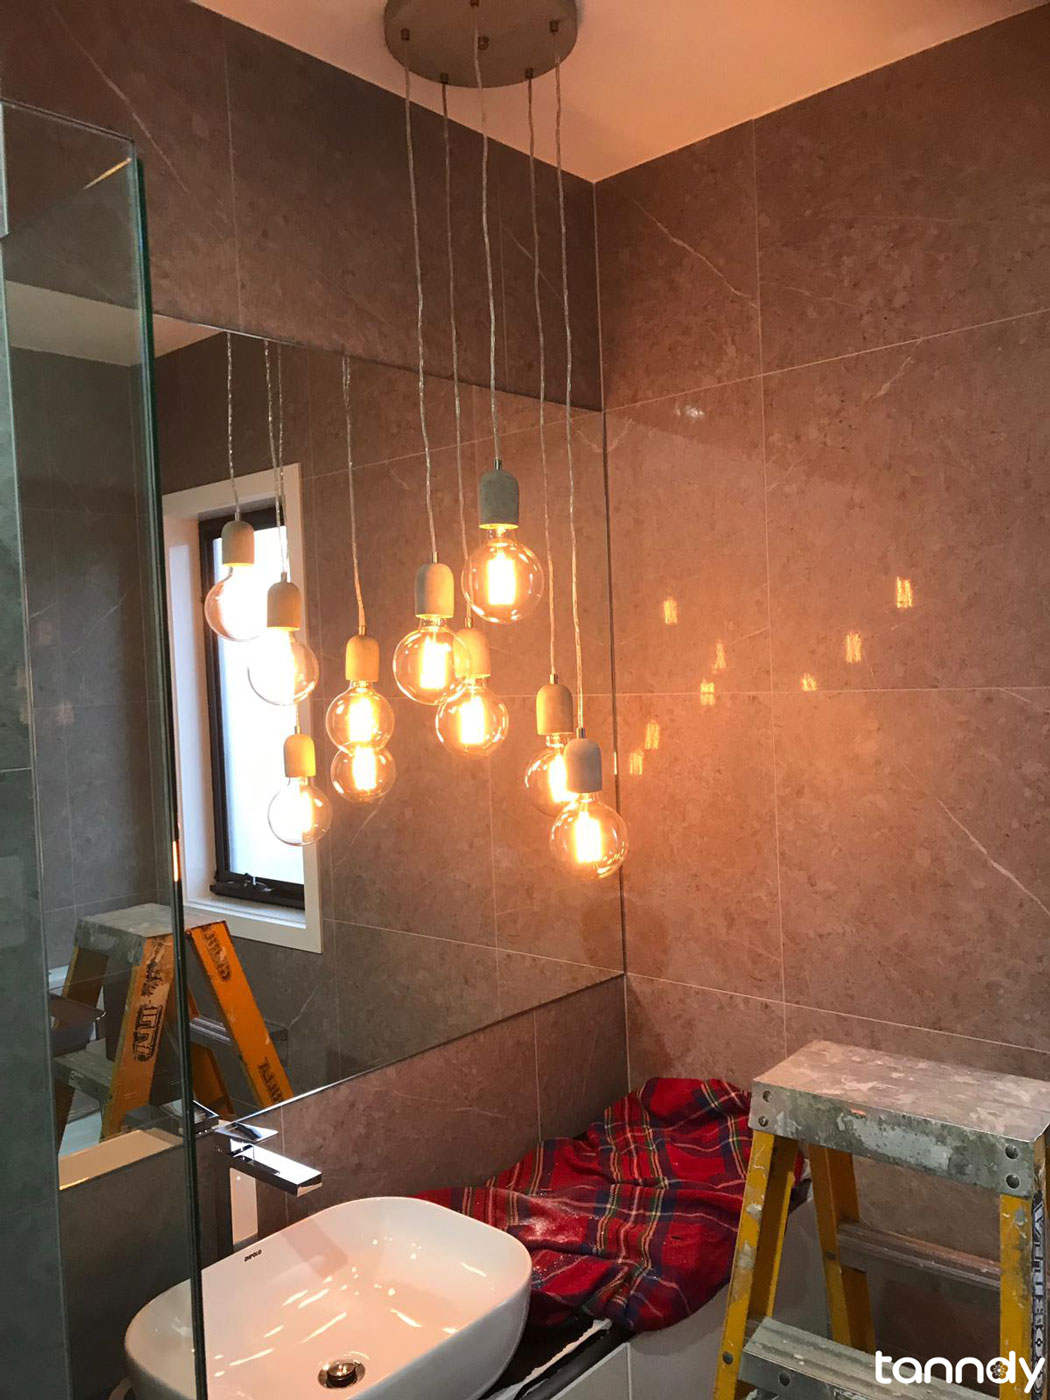 lighting in the bathroom